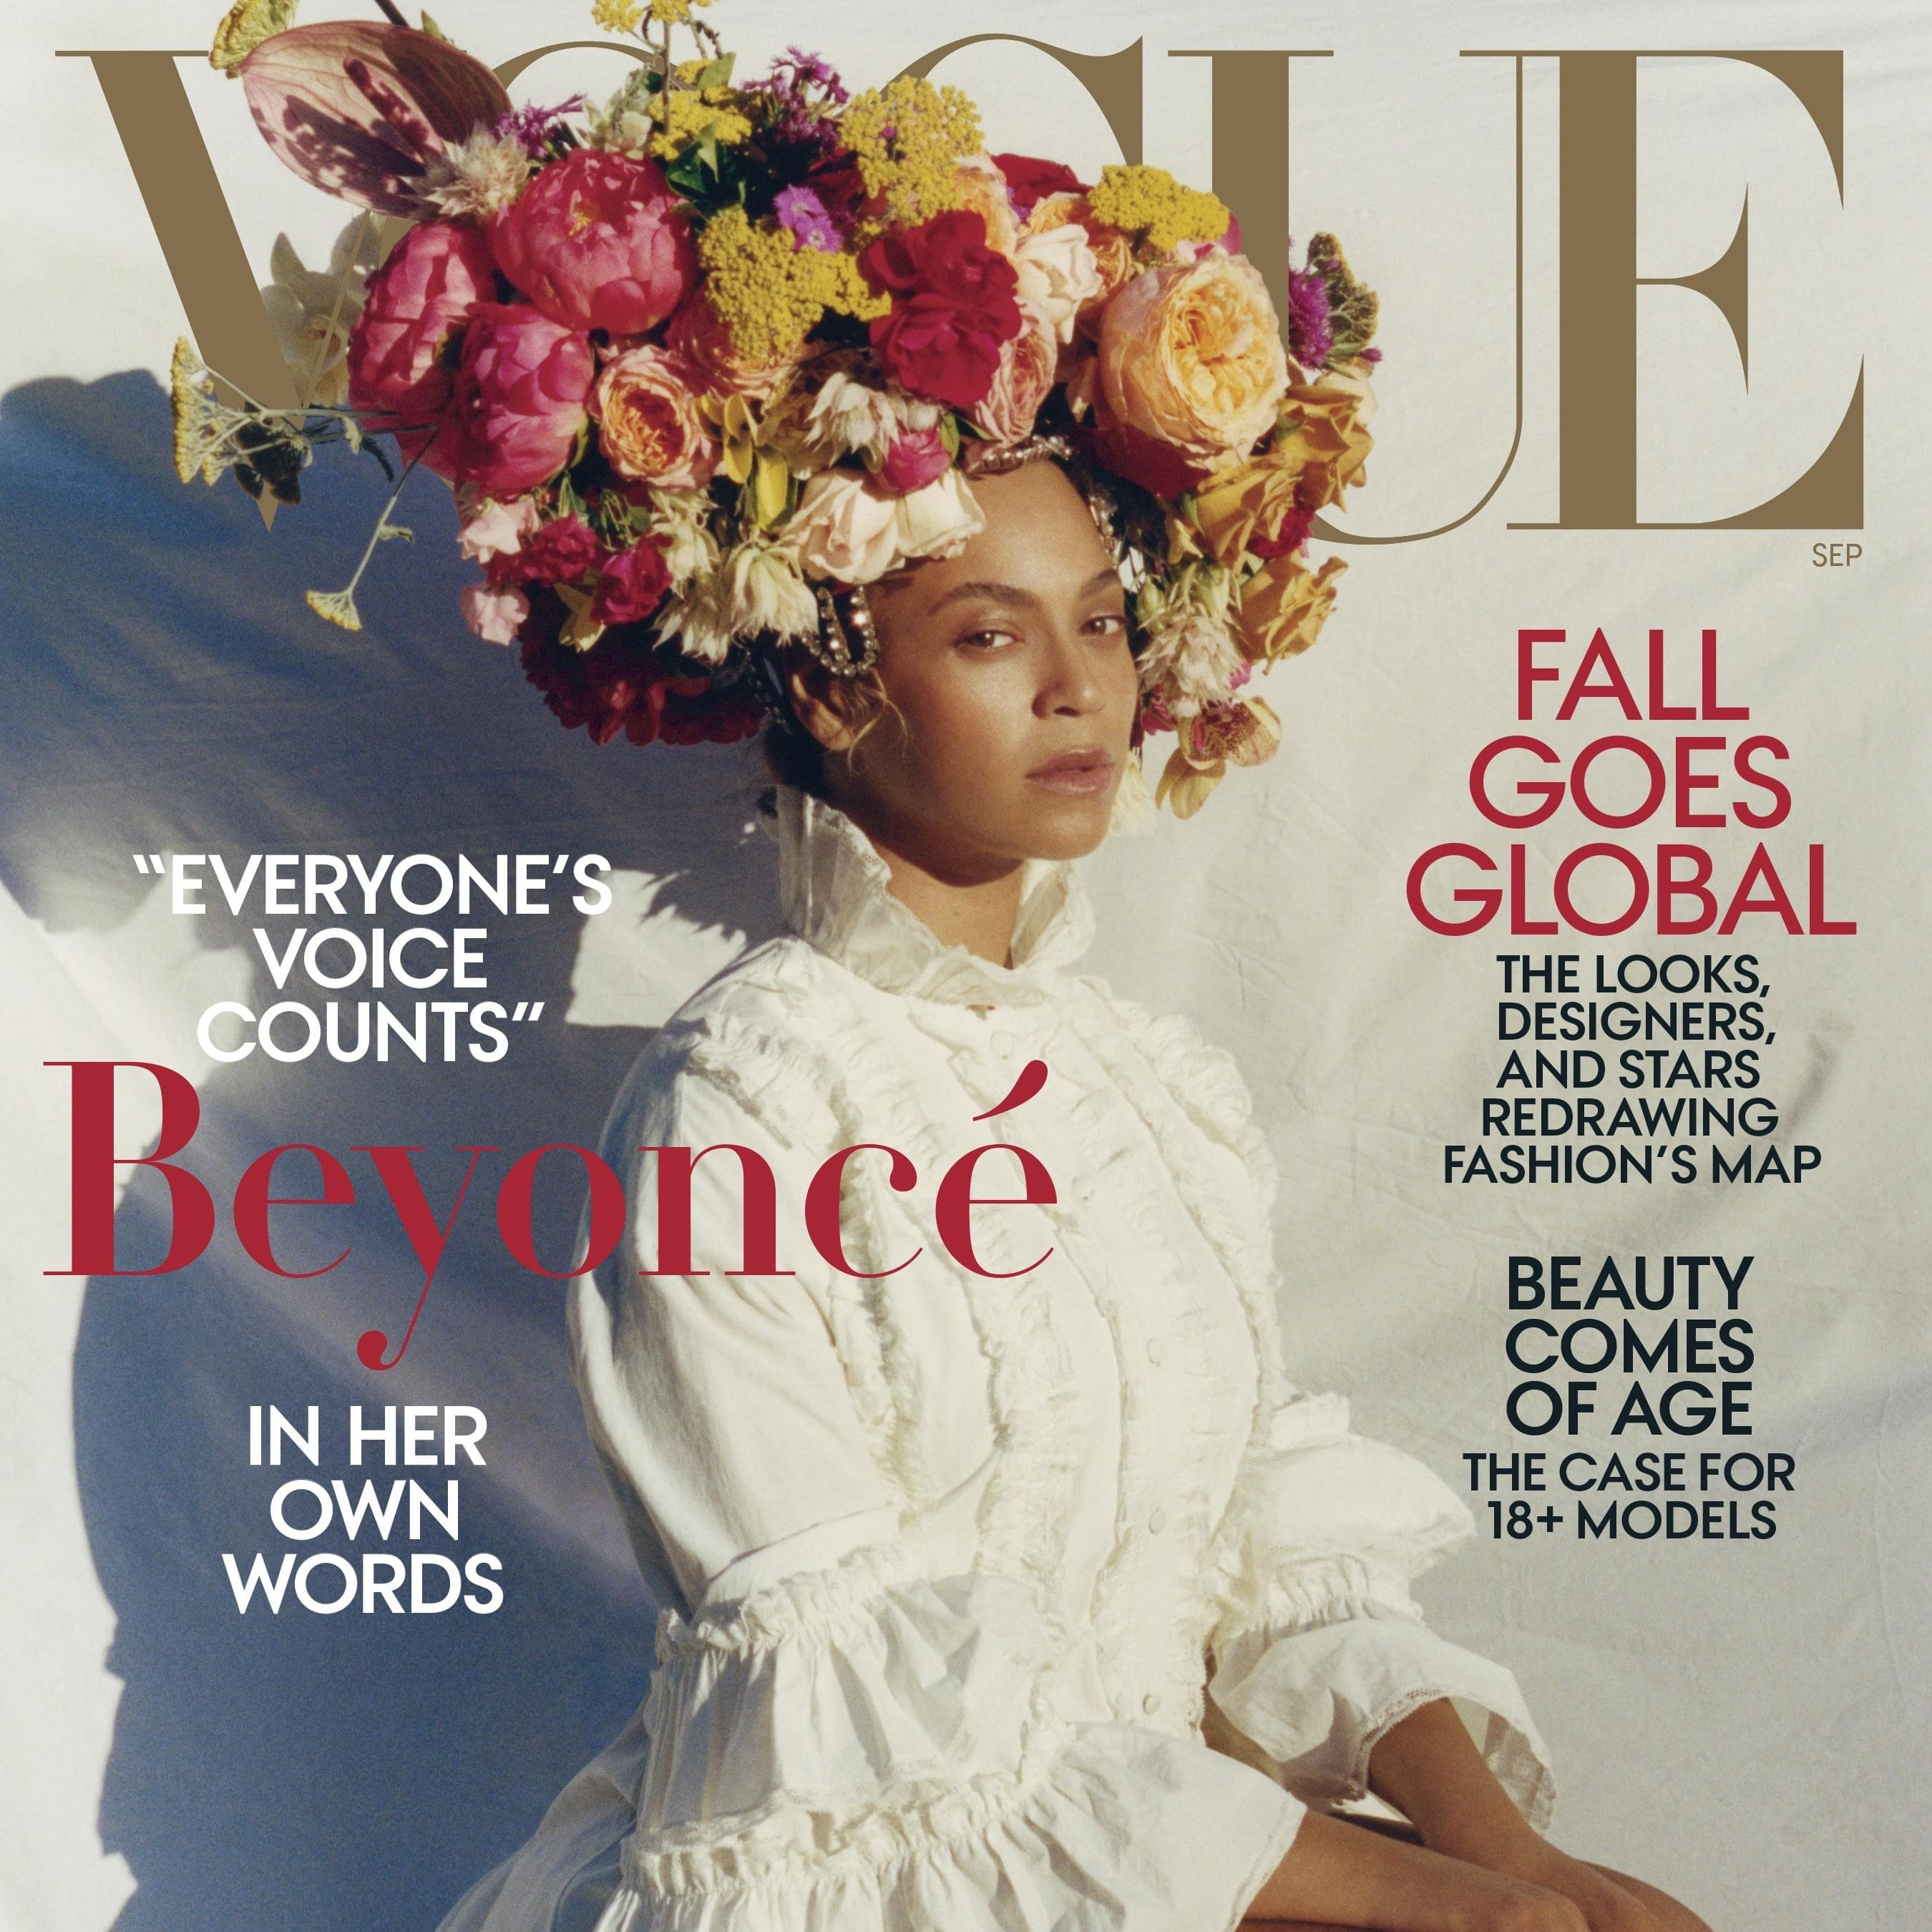 Beyonce Reveals She Had Toxemia When Pregnant With Twins